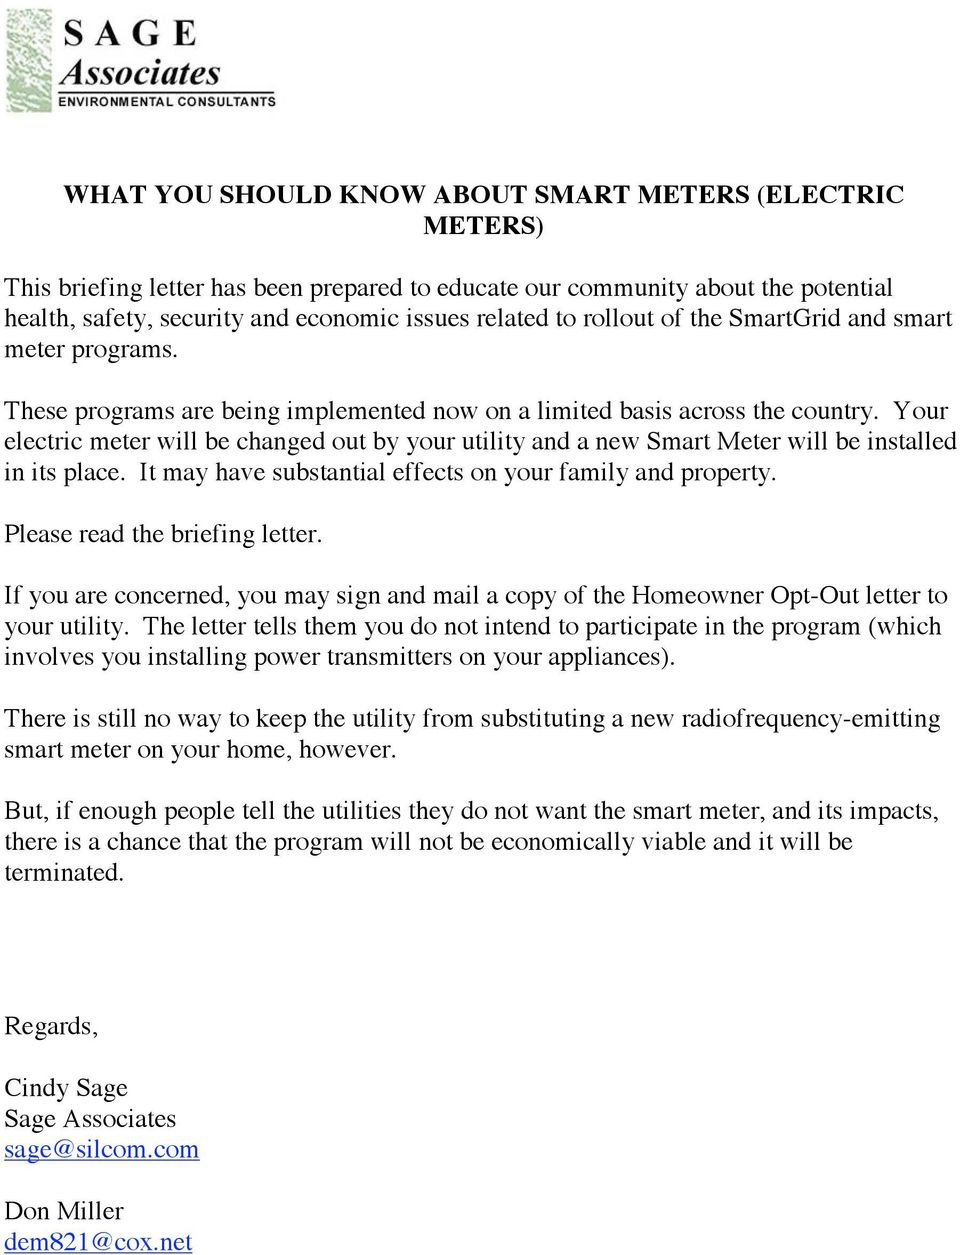 Smart Meter Opt Out Letter.What You Should Know About Smart Meters Electric Meters Pdf